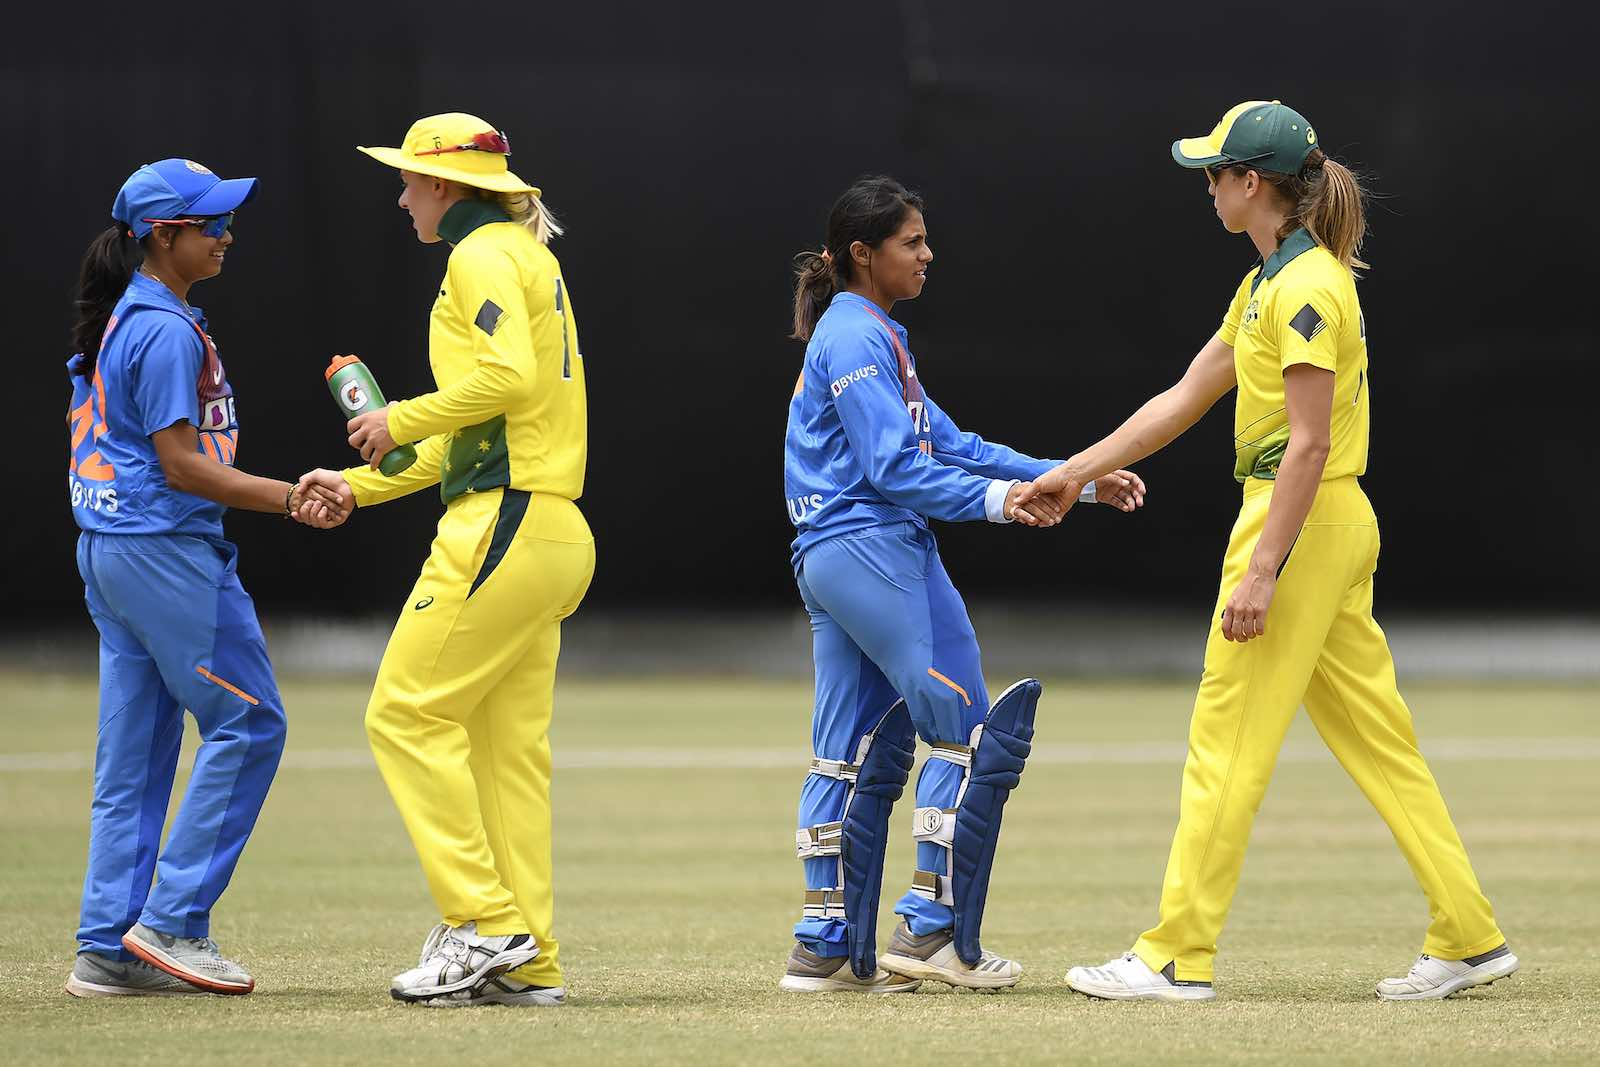 Players shake hands after a Women's T20 match between Australia A and India A last month on the Gold Coast, Australia (Photo: Albert Perez/Getty Images)